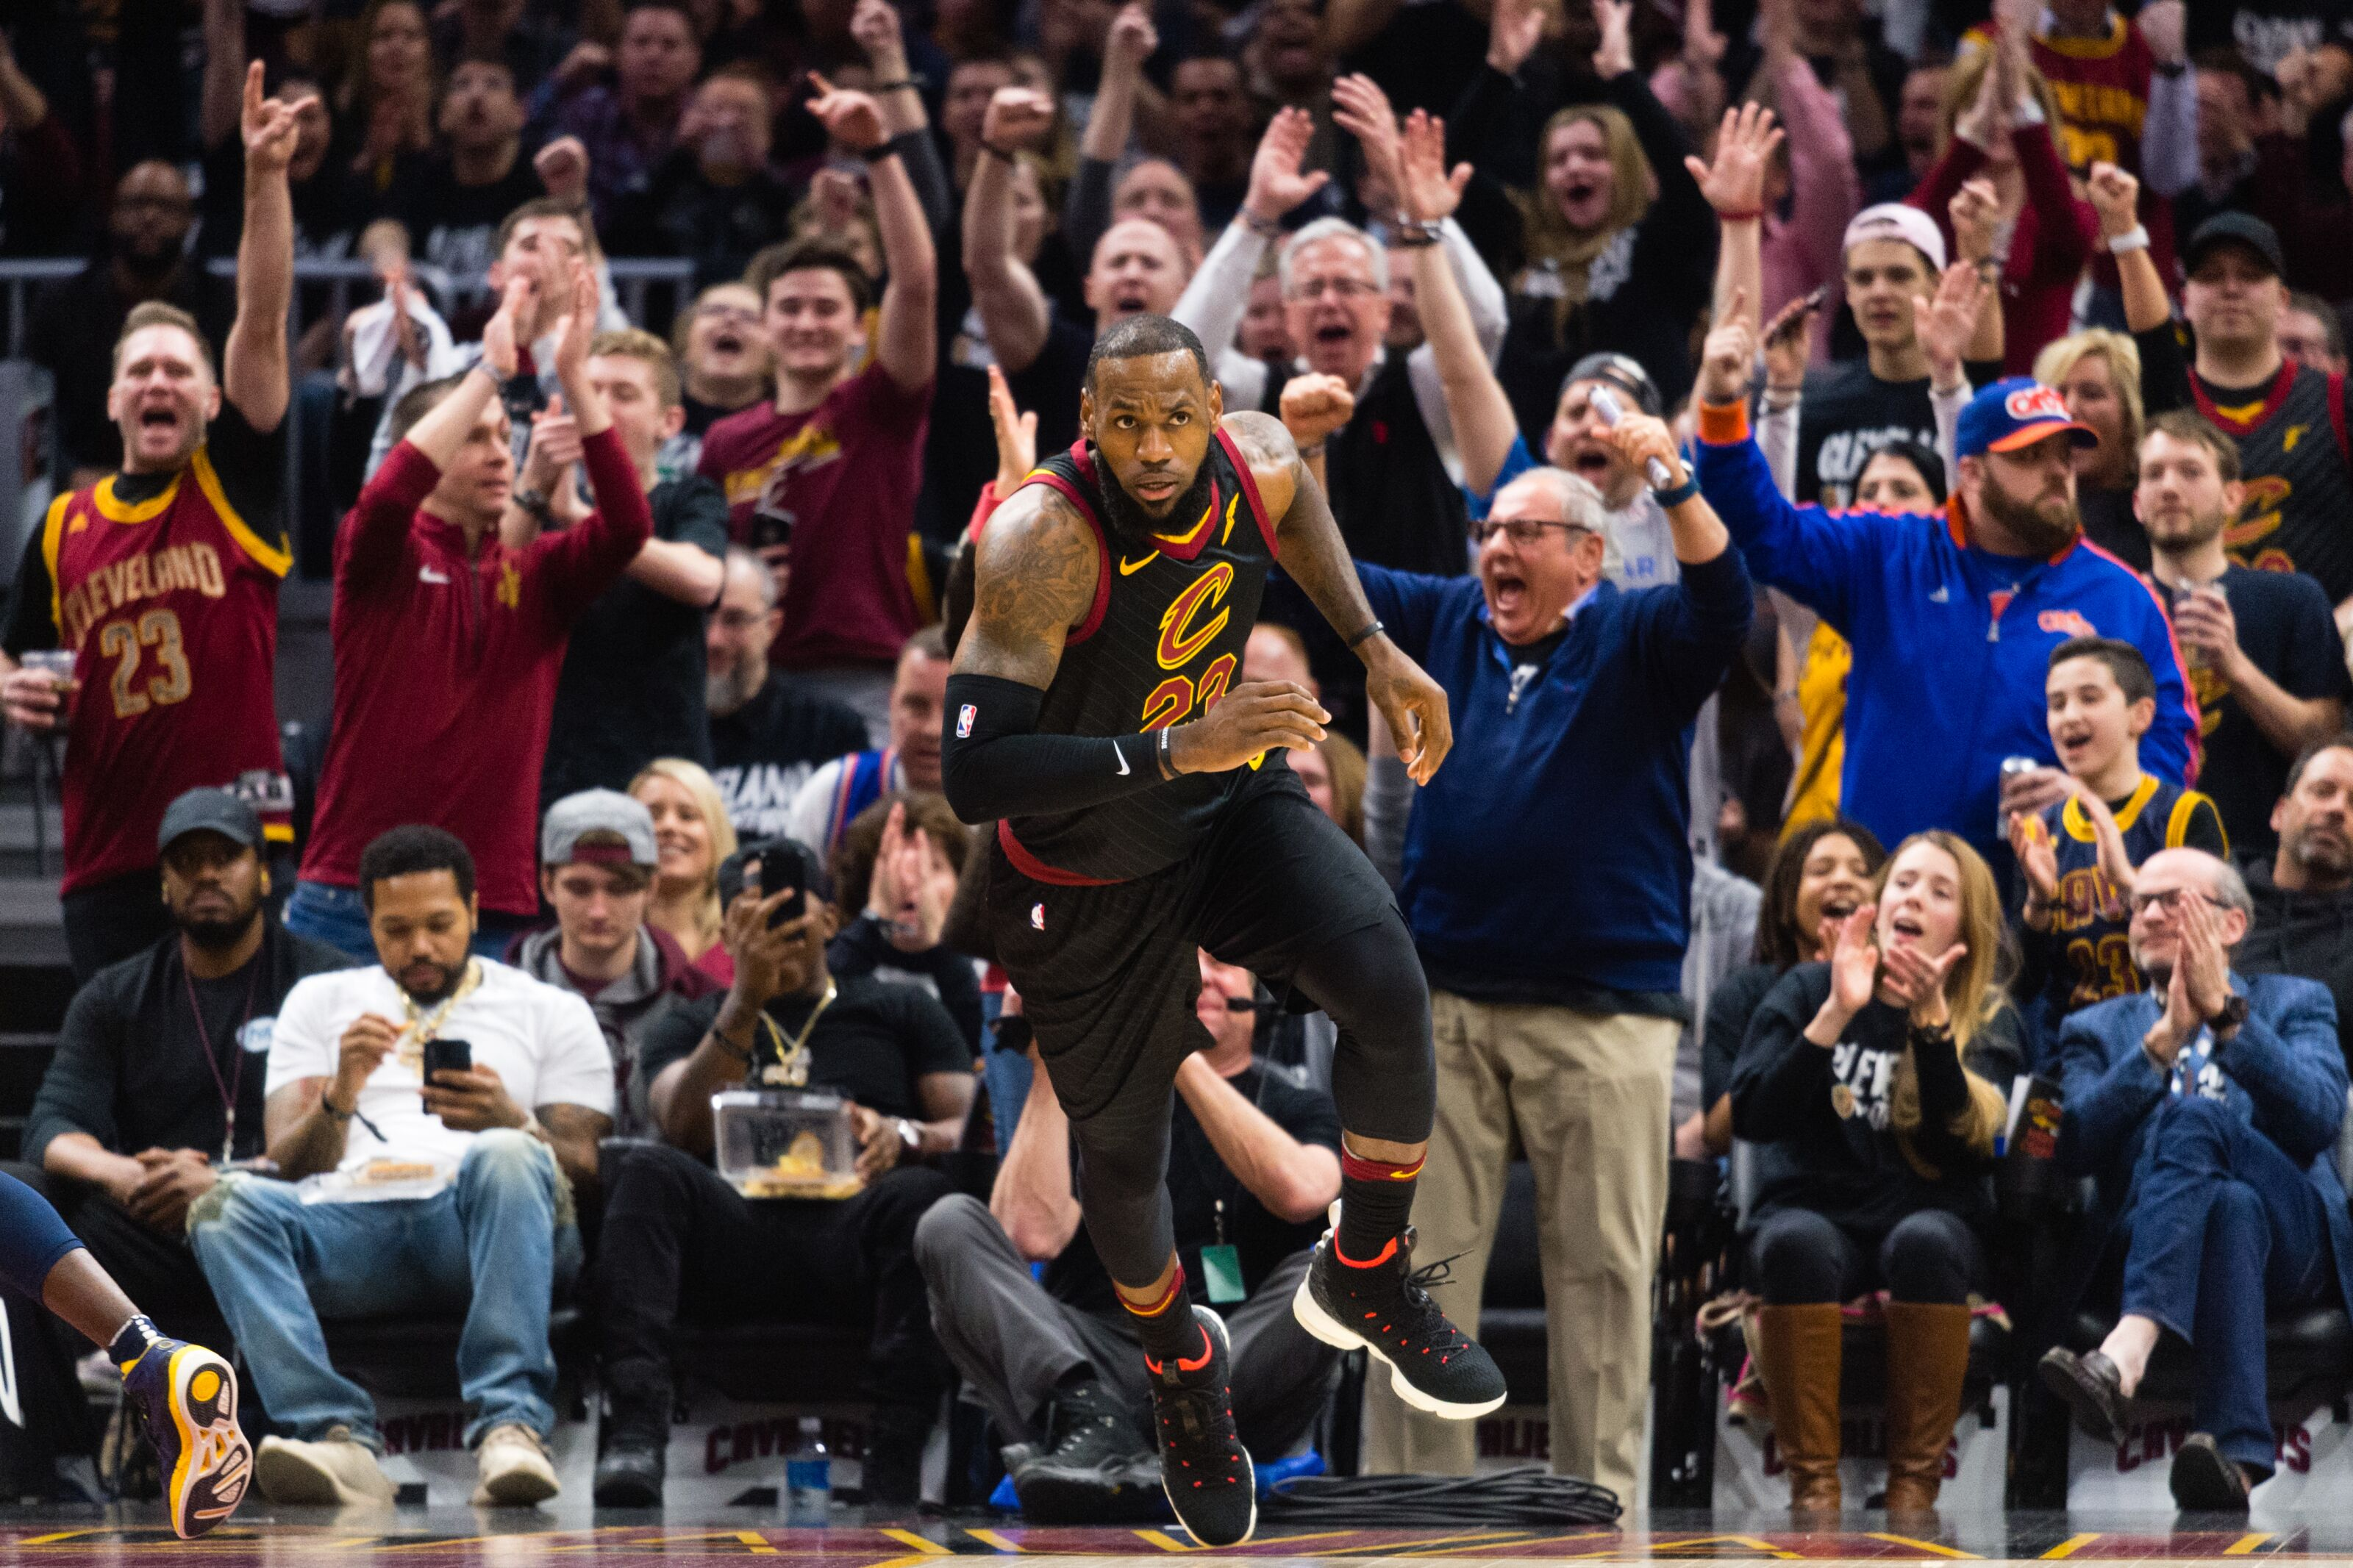 948343738-indiana-pacers-v-cleveland-cavaliers-game-two.jpg